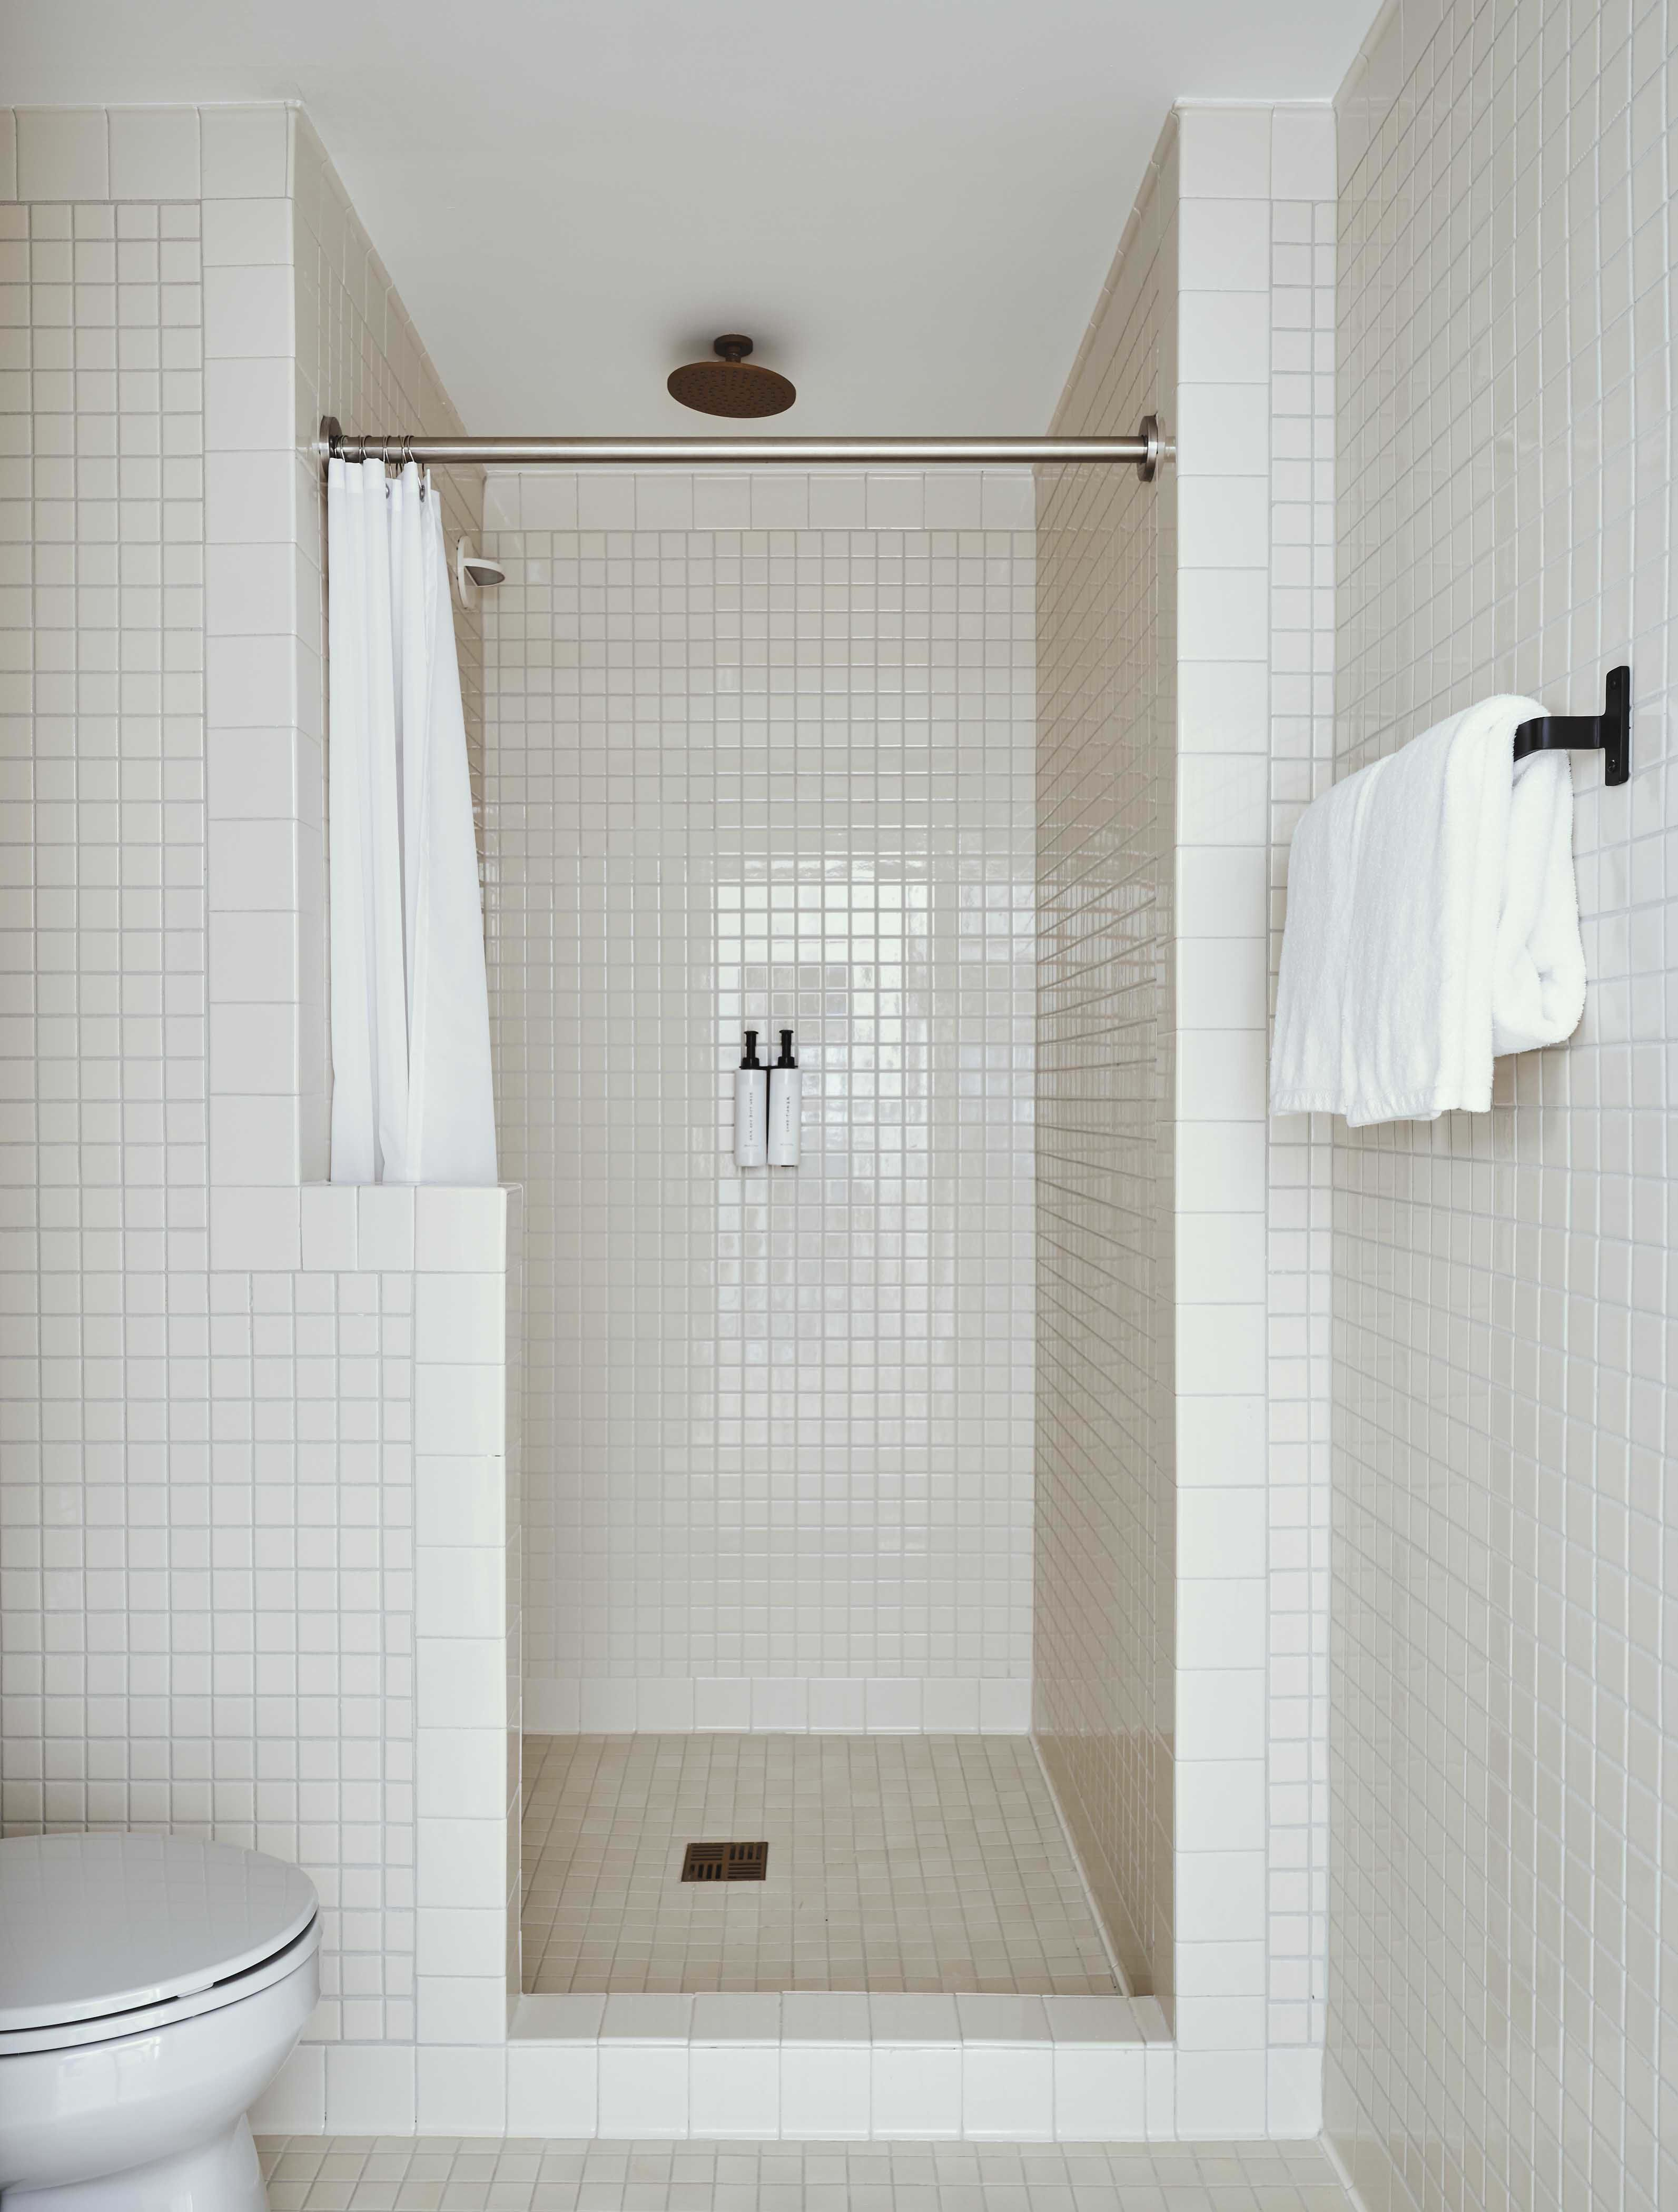 Sister City Hotel In Nyc Is A Small Space Wonder Bathroom Design